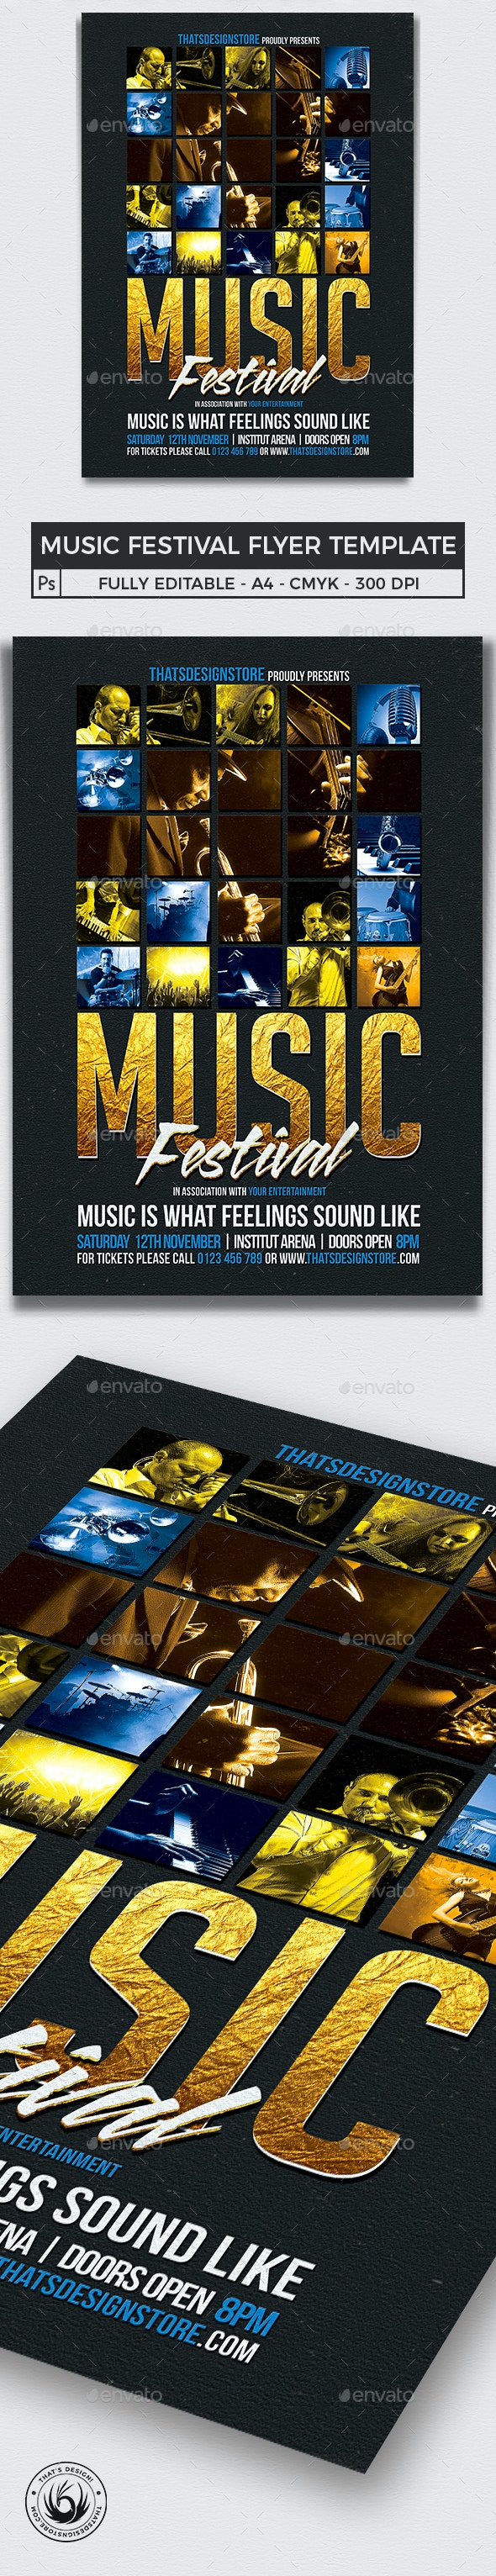 Music Festival Flyer Template V1 - Concerts Events